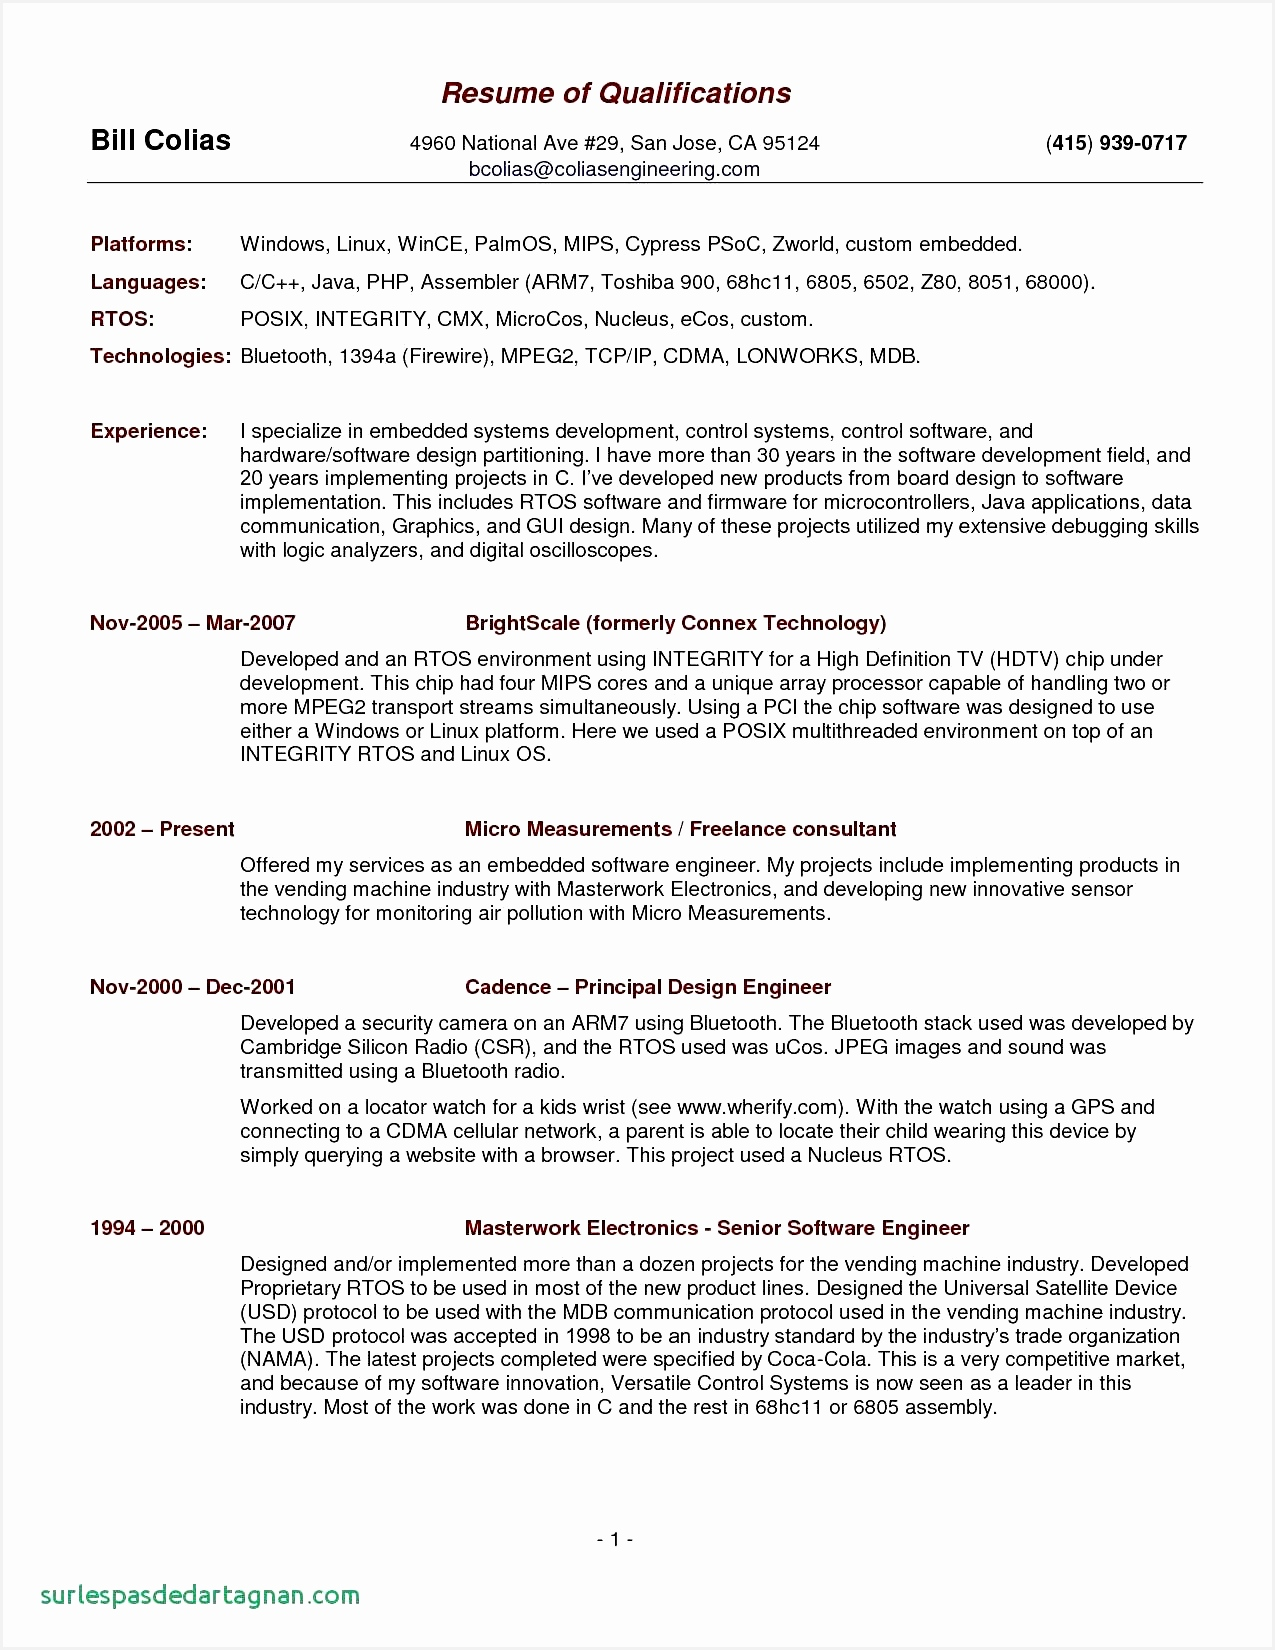 Free Resume Ideas – Template of Business Resume Bud Proposal16501275